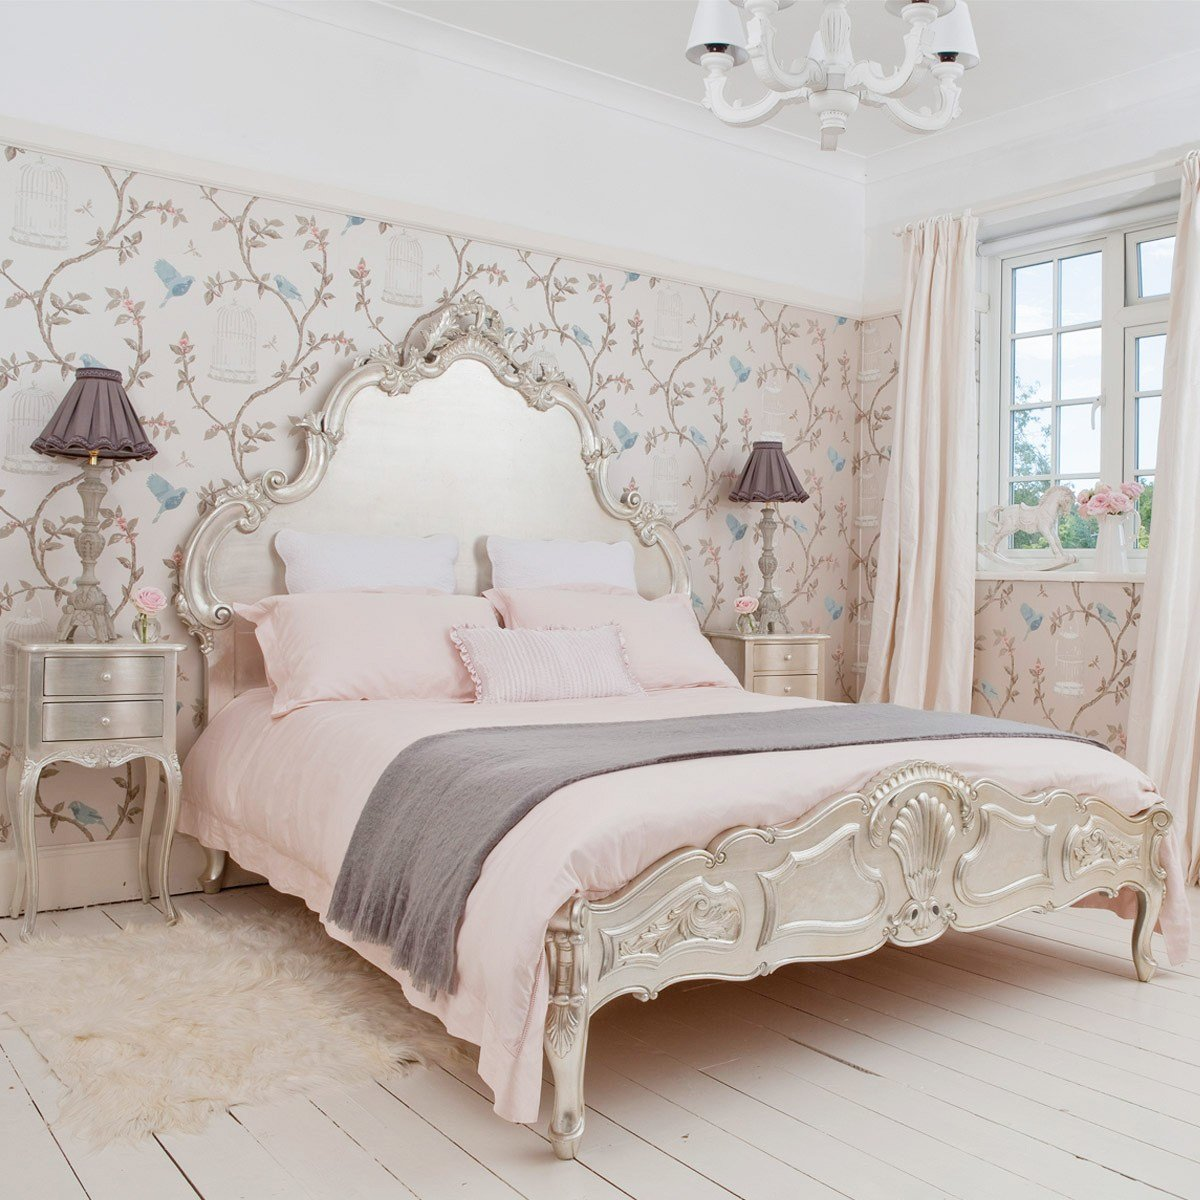 Best French Furniture Art – French Furniture Is A Trend To Decorate Your Home With Pictures